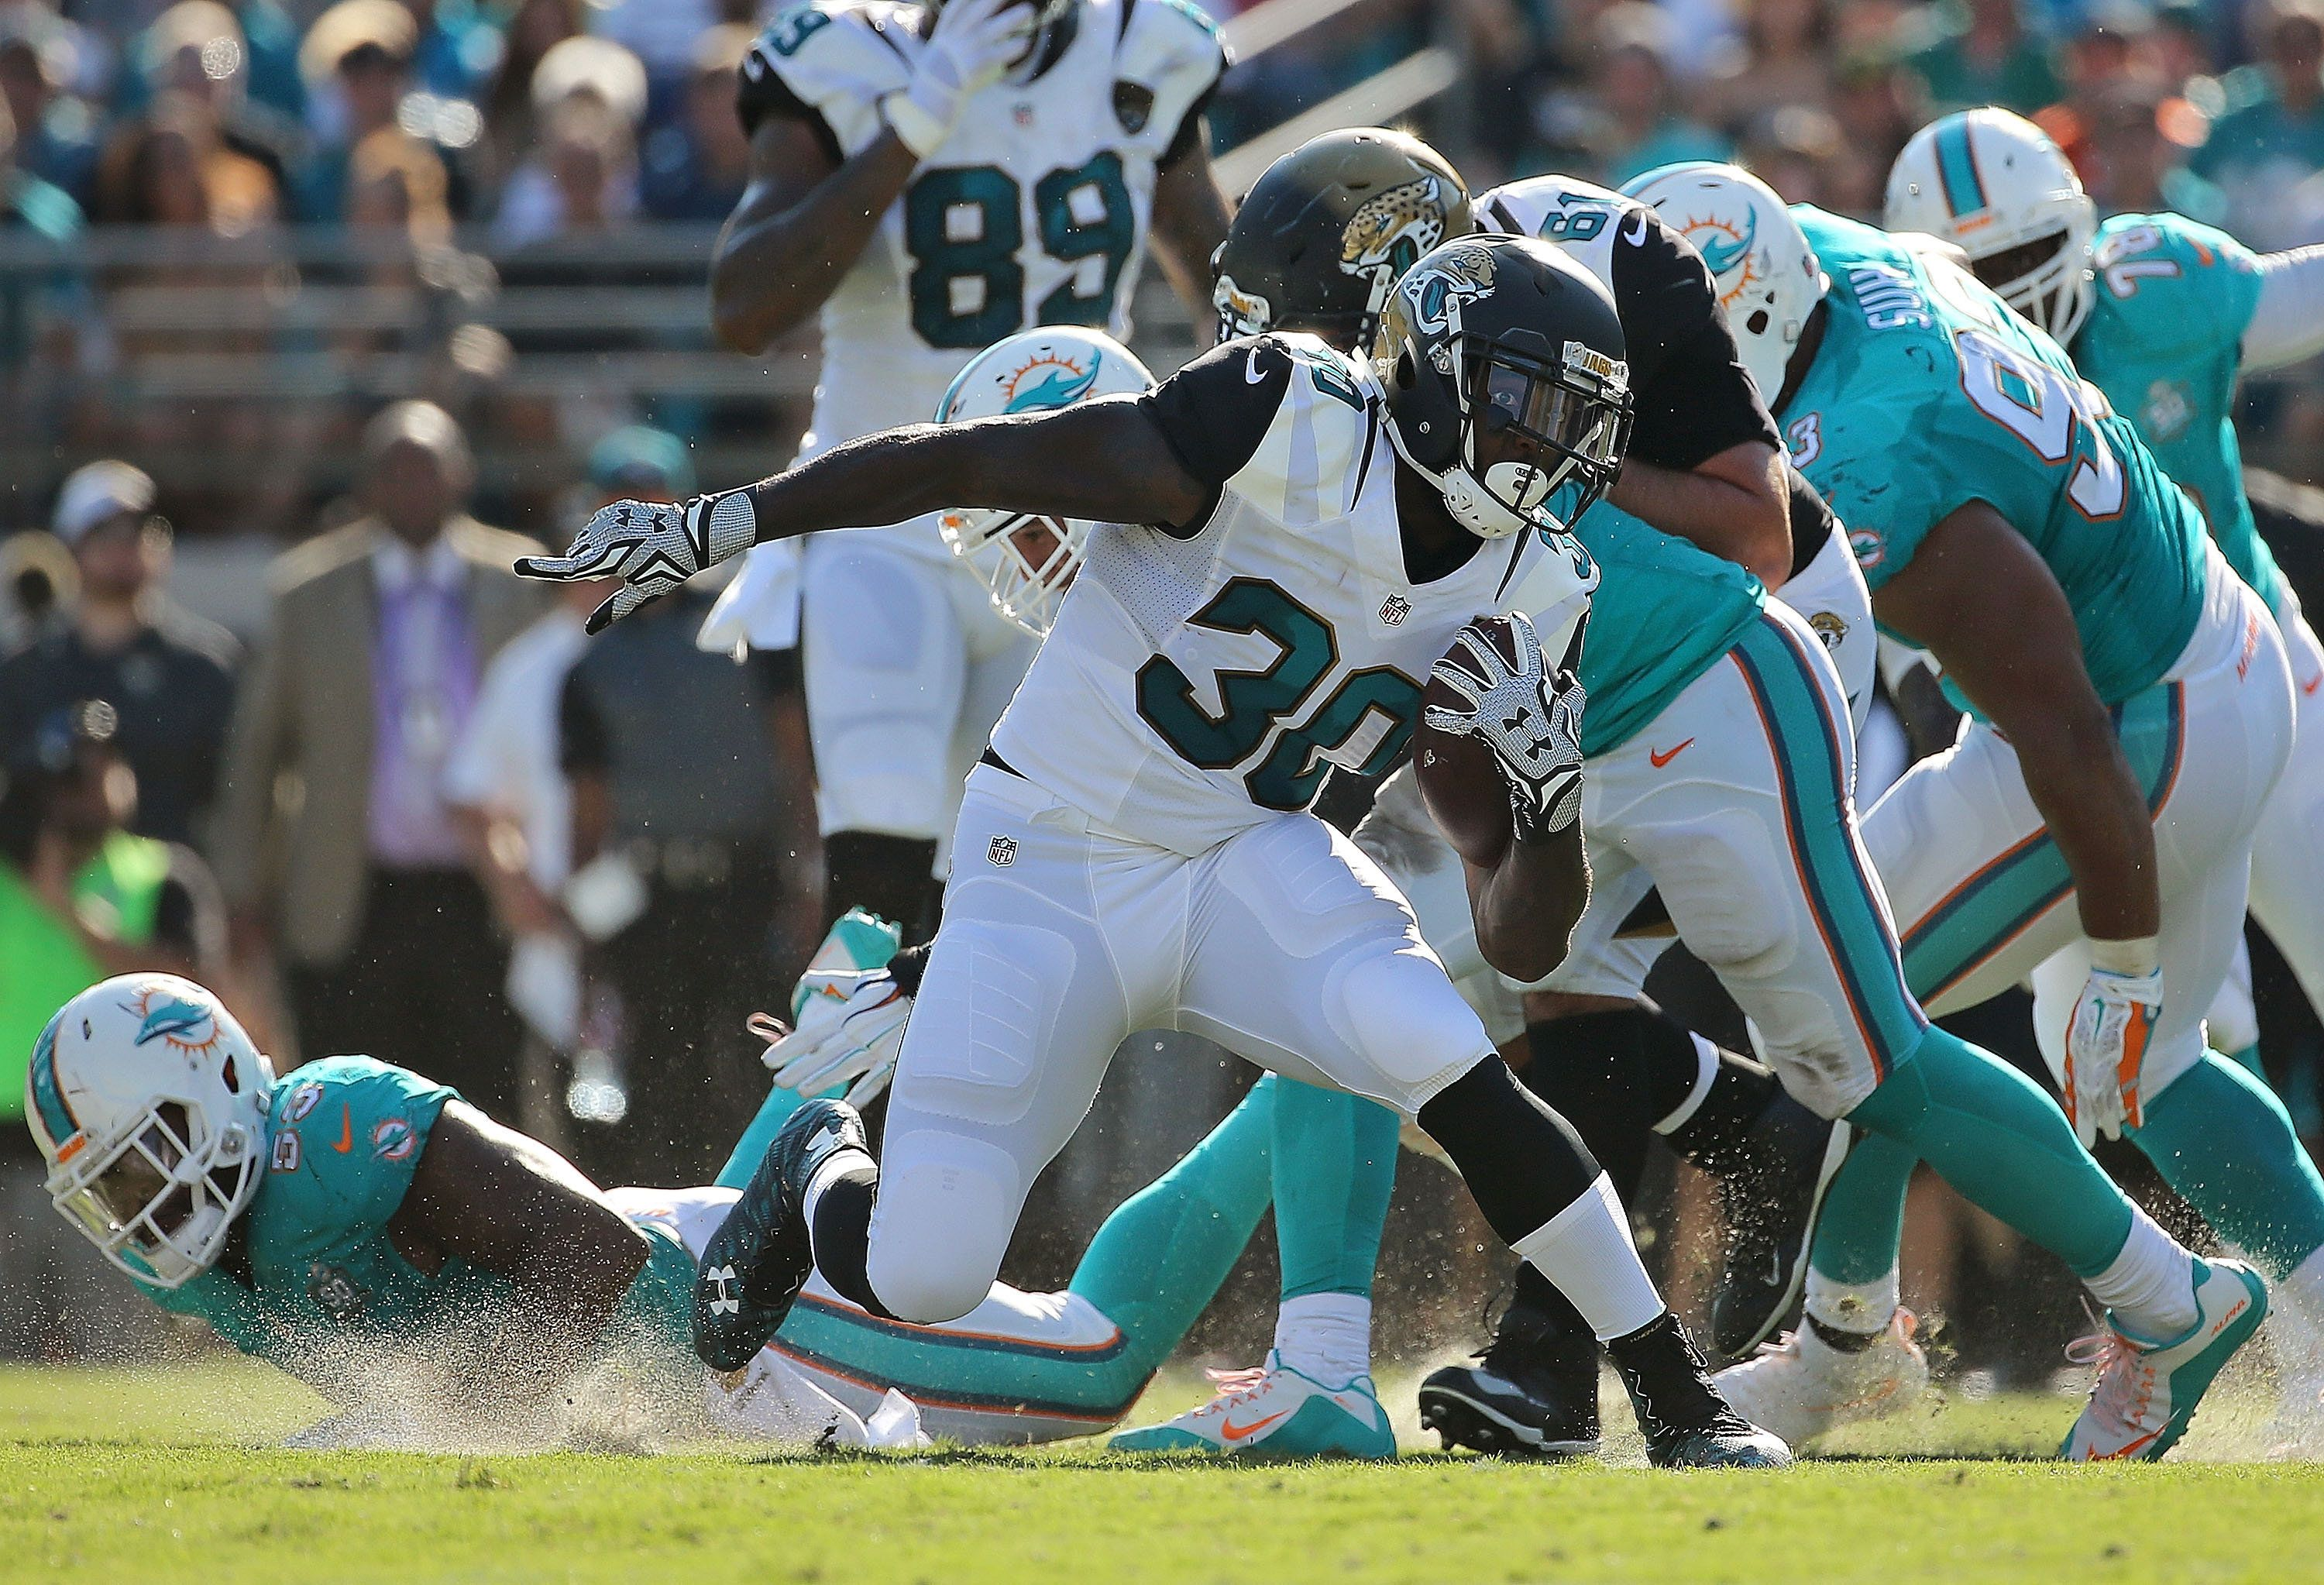 JACKSONVILLE, FL - SEPTEMBER 20: Bernard Pierce #30 of the Jacksonville Jaguars rushes during a game against the Miami Dolphins at EverBank Field on September 20, 2015 in Jacksonville, Florida.  (Photo by Mike Ehrmann/Getty Images)